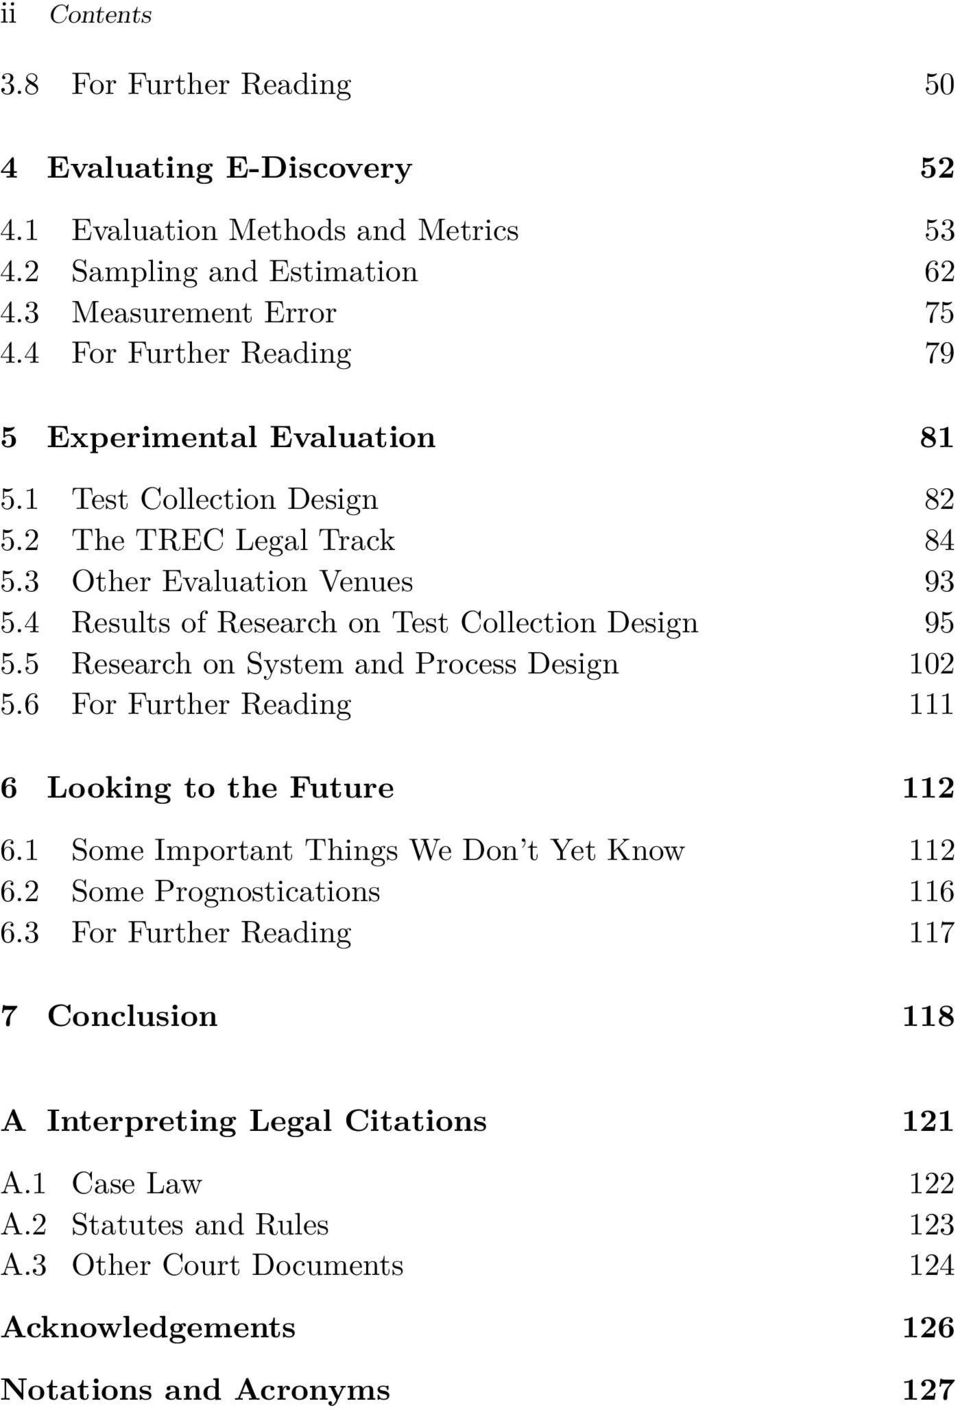 4 Results of Research on Test Collection Design 95 5.5 Research on System and Process Design 102 5.6 For Further Reading 111 6 Looking to the Future 112 6.